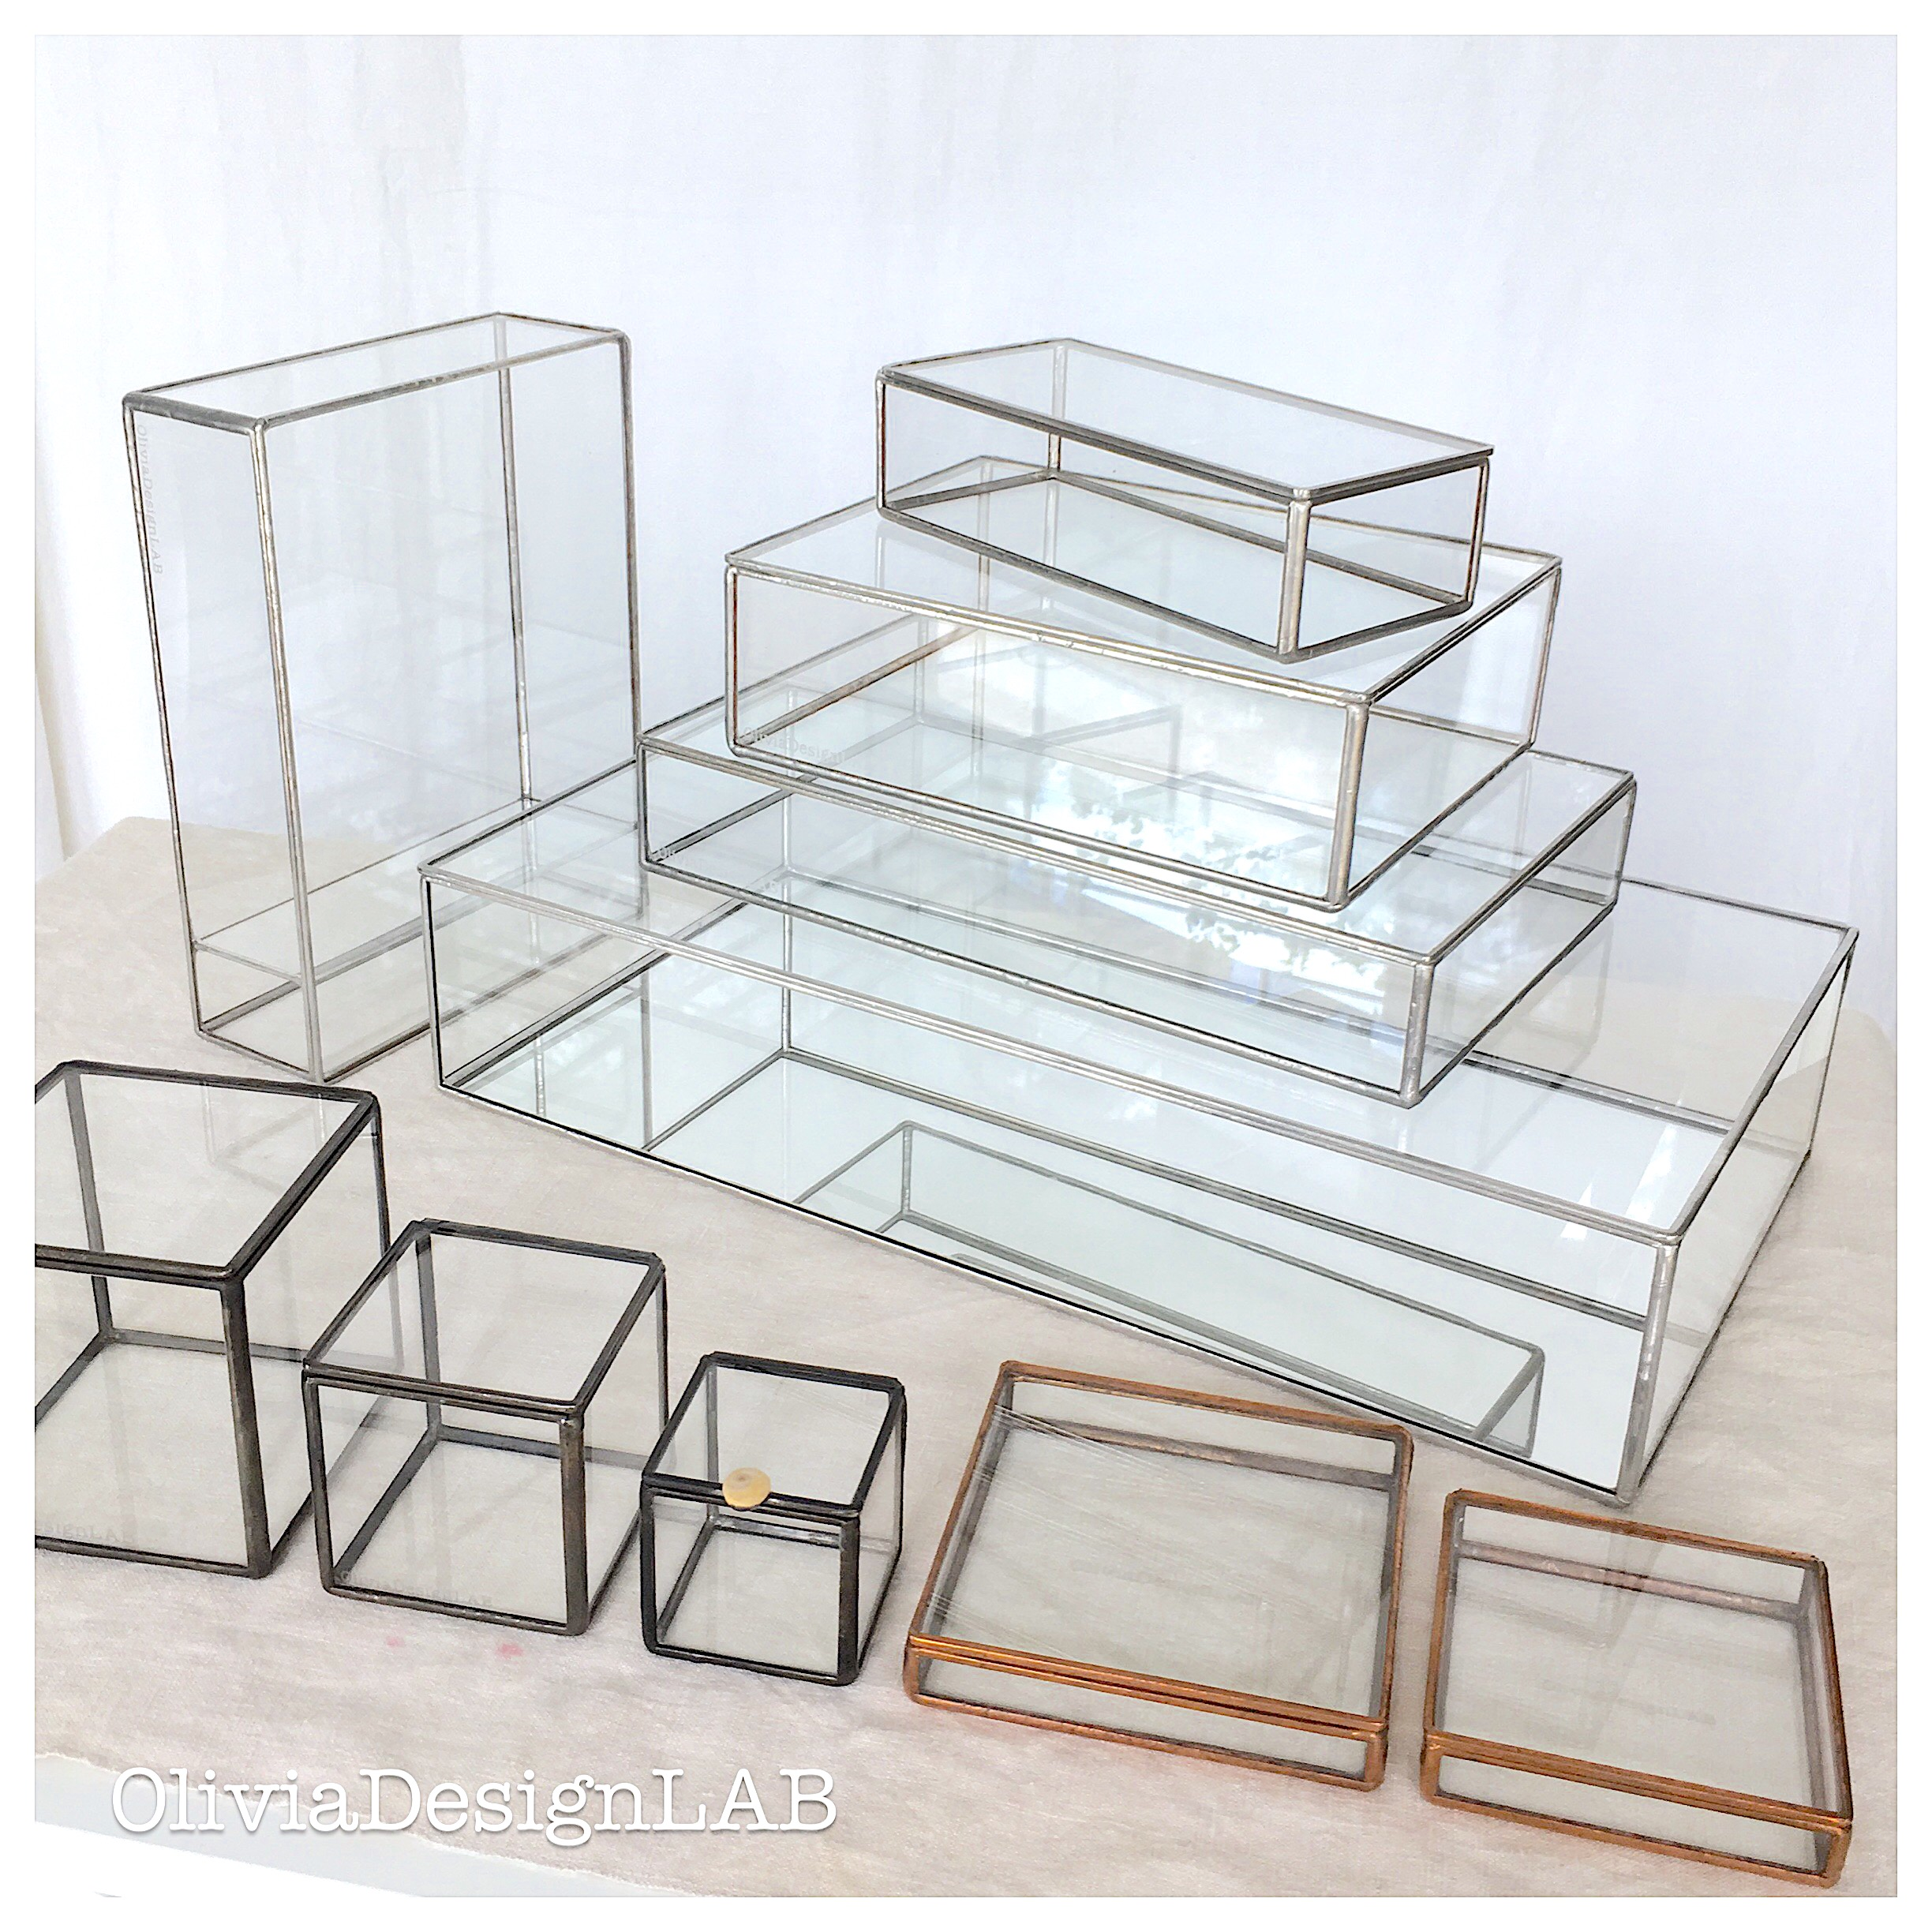 4 x 4 inches - 10 x 10 cm glass box with lid